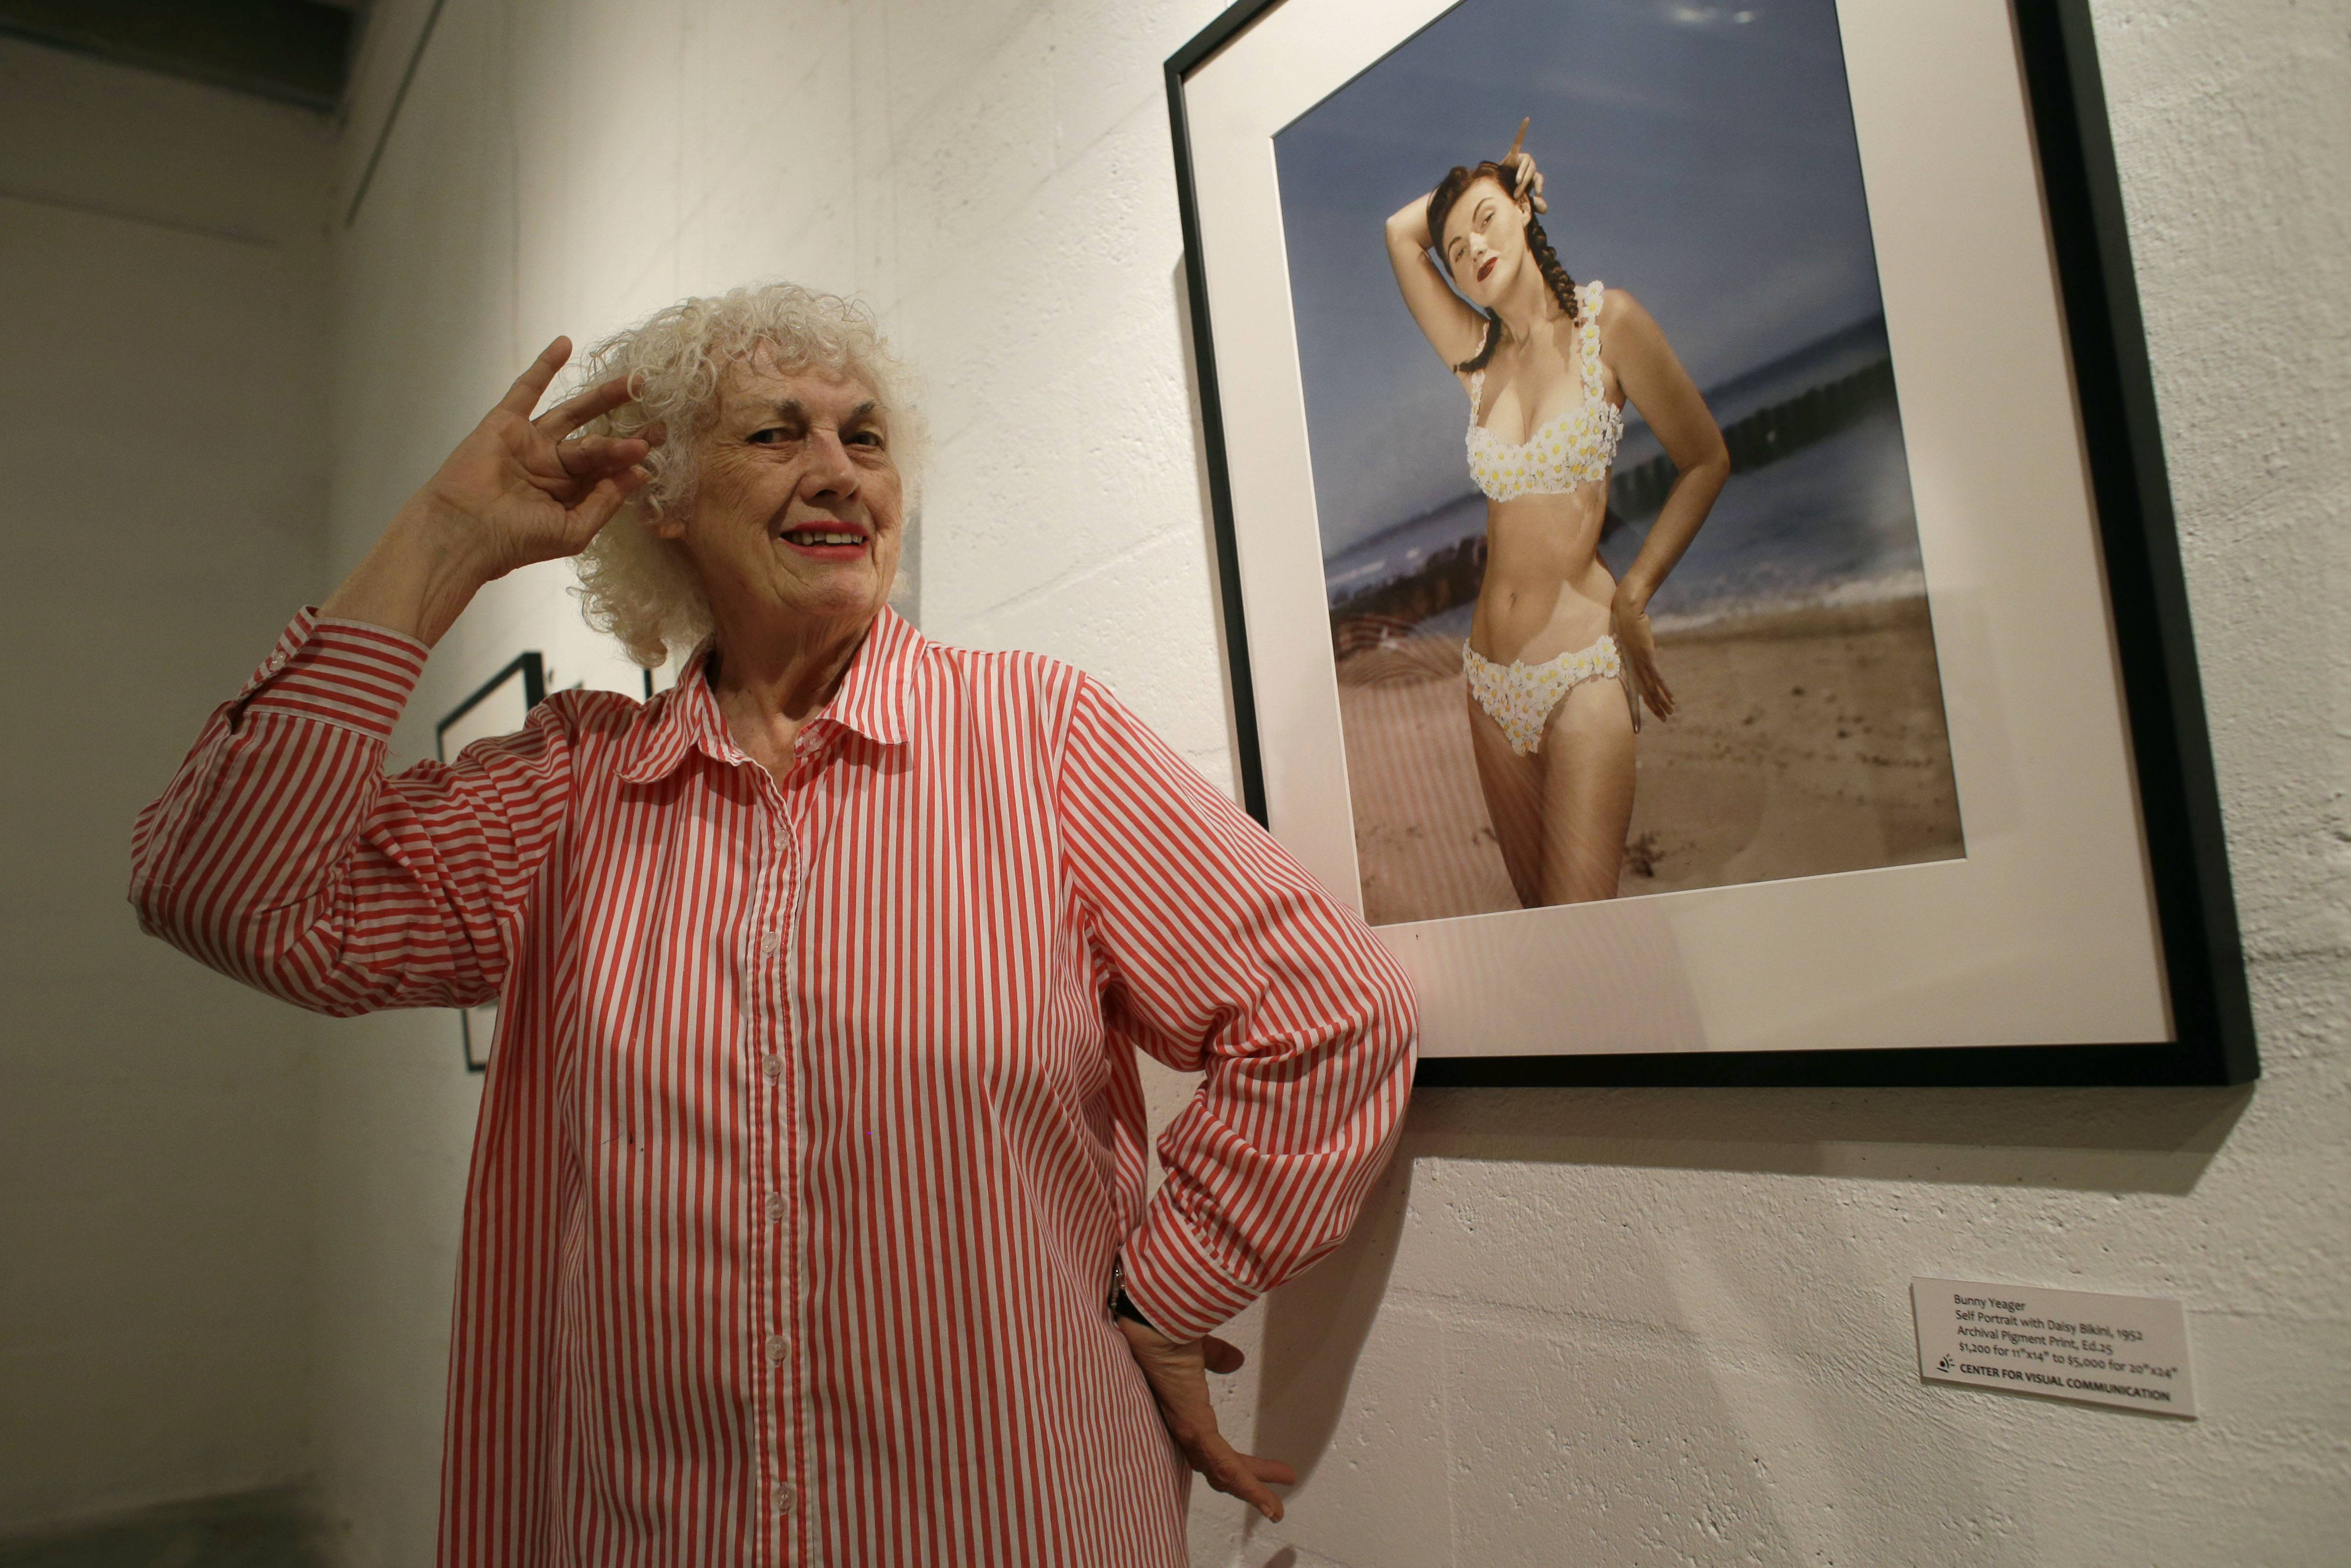 In this April 23, 2013 file photo, photographer Bunny Yeager poses next to a self-portrait photograph taken in 1952 at the Bunny Yeager Studio in Miami. Yeager, a model turned photographer who was most famous for photographing Bettie Page in the 1950s, died Saturday at a Delray Beach hospice. She was 85 years old.